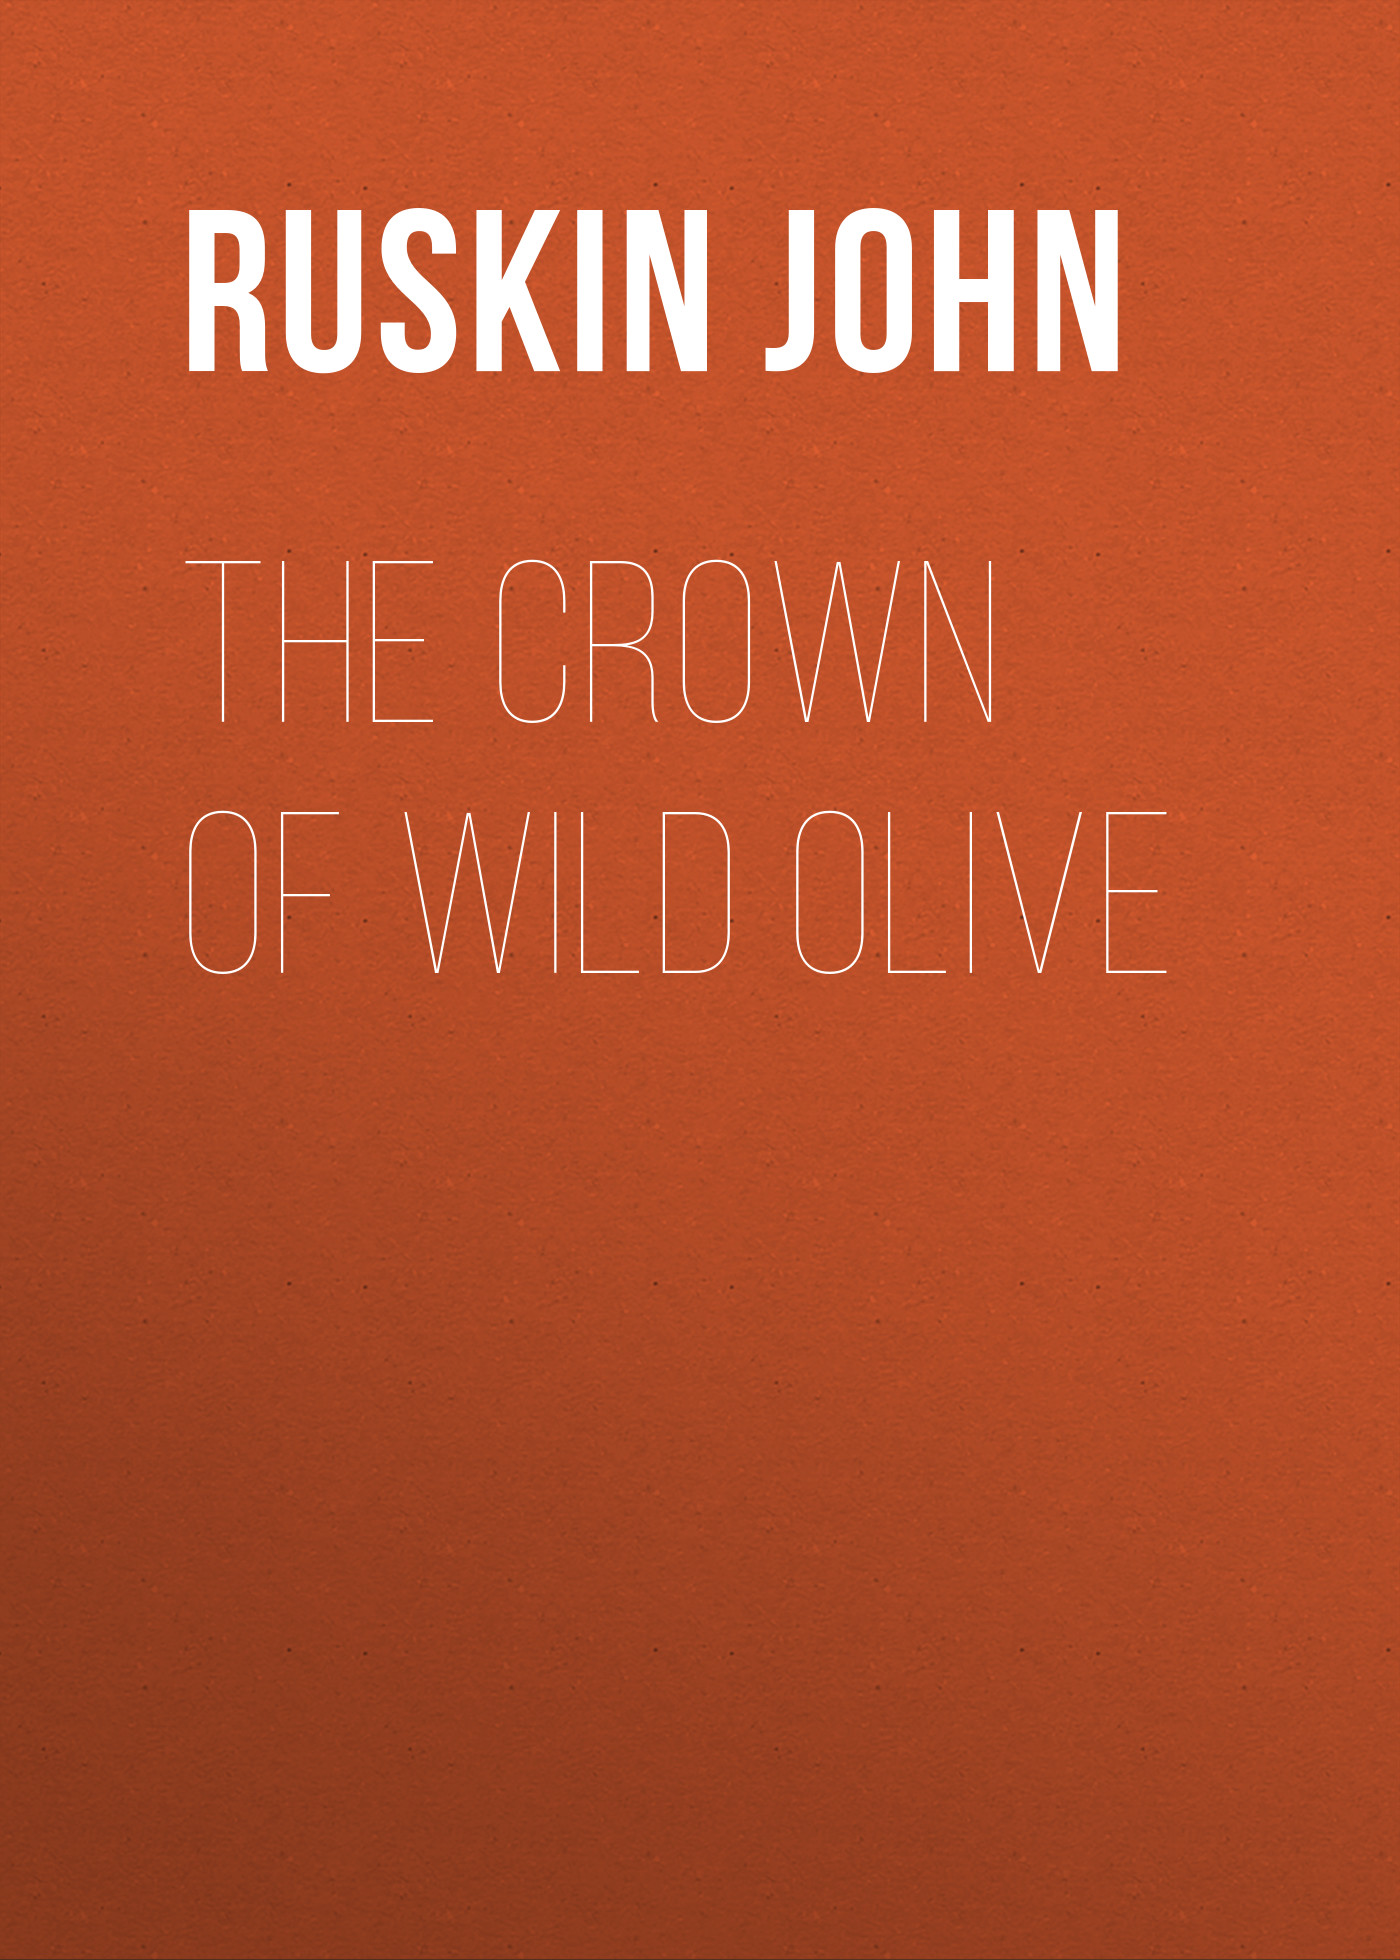 Ruskin John The Crown of Wild Olive ruskin john the storm cloud of the nineteenth century